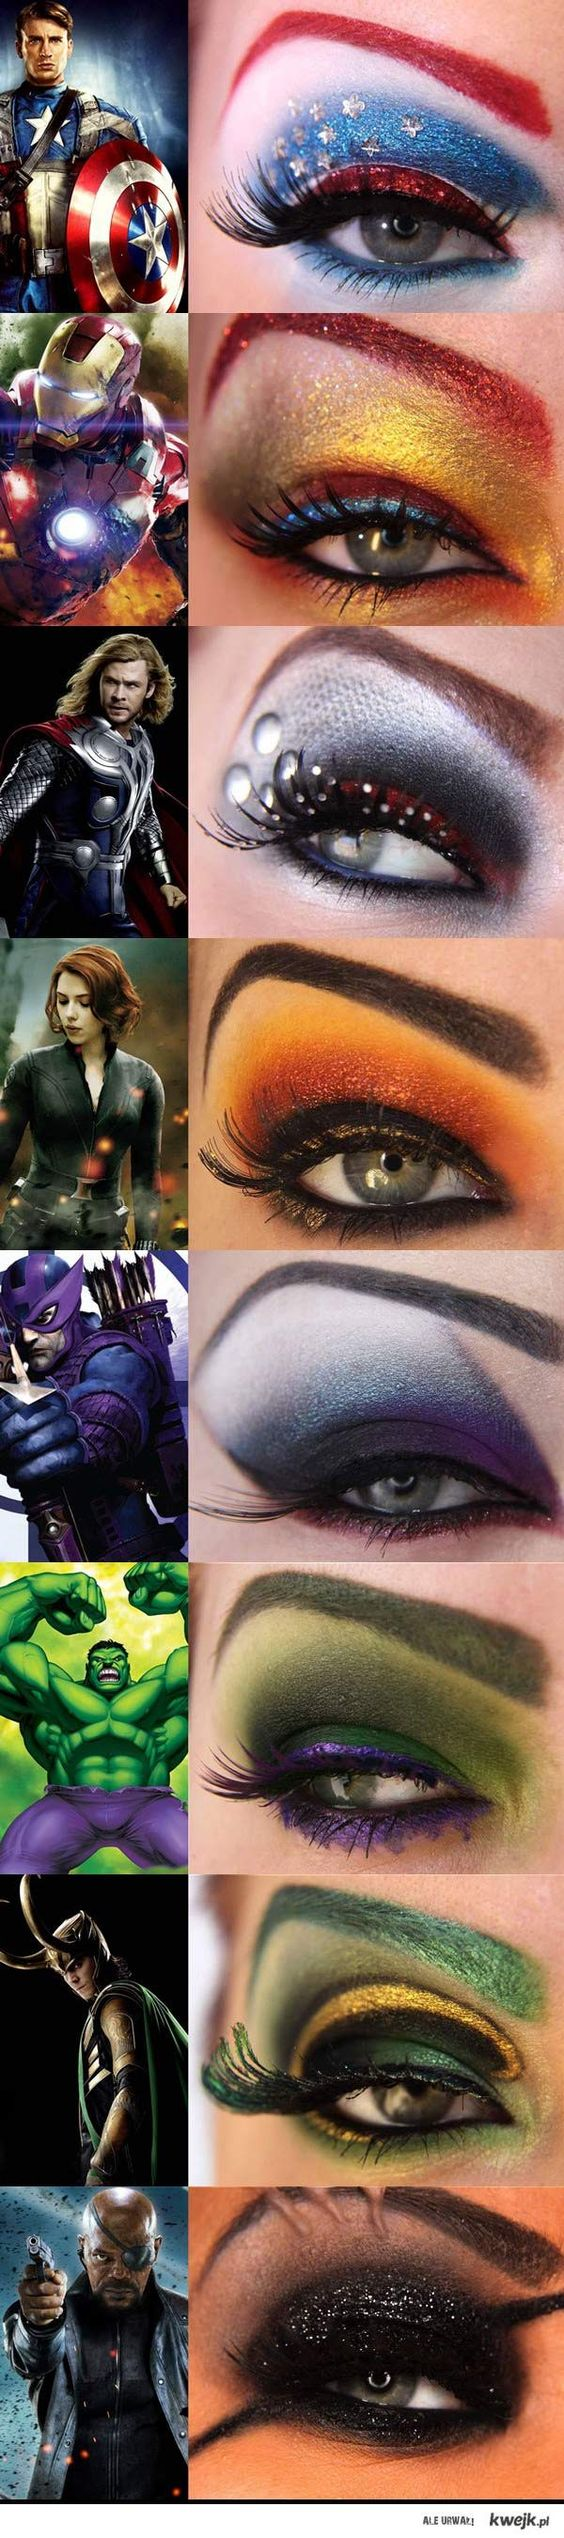 the avengers makeup - I wish I could make it!: Avengers Inspired, Avengers Epic, Avengers Eyeshadow, Makeup Halloween, Avengers Makeup, Hero Eye, The Avengers